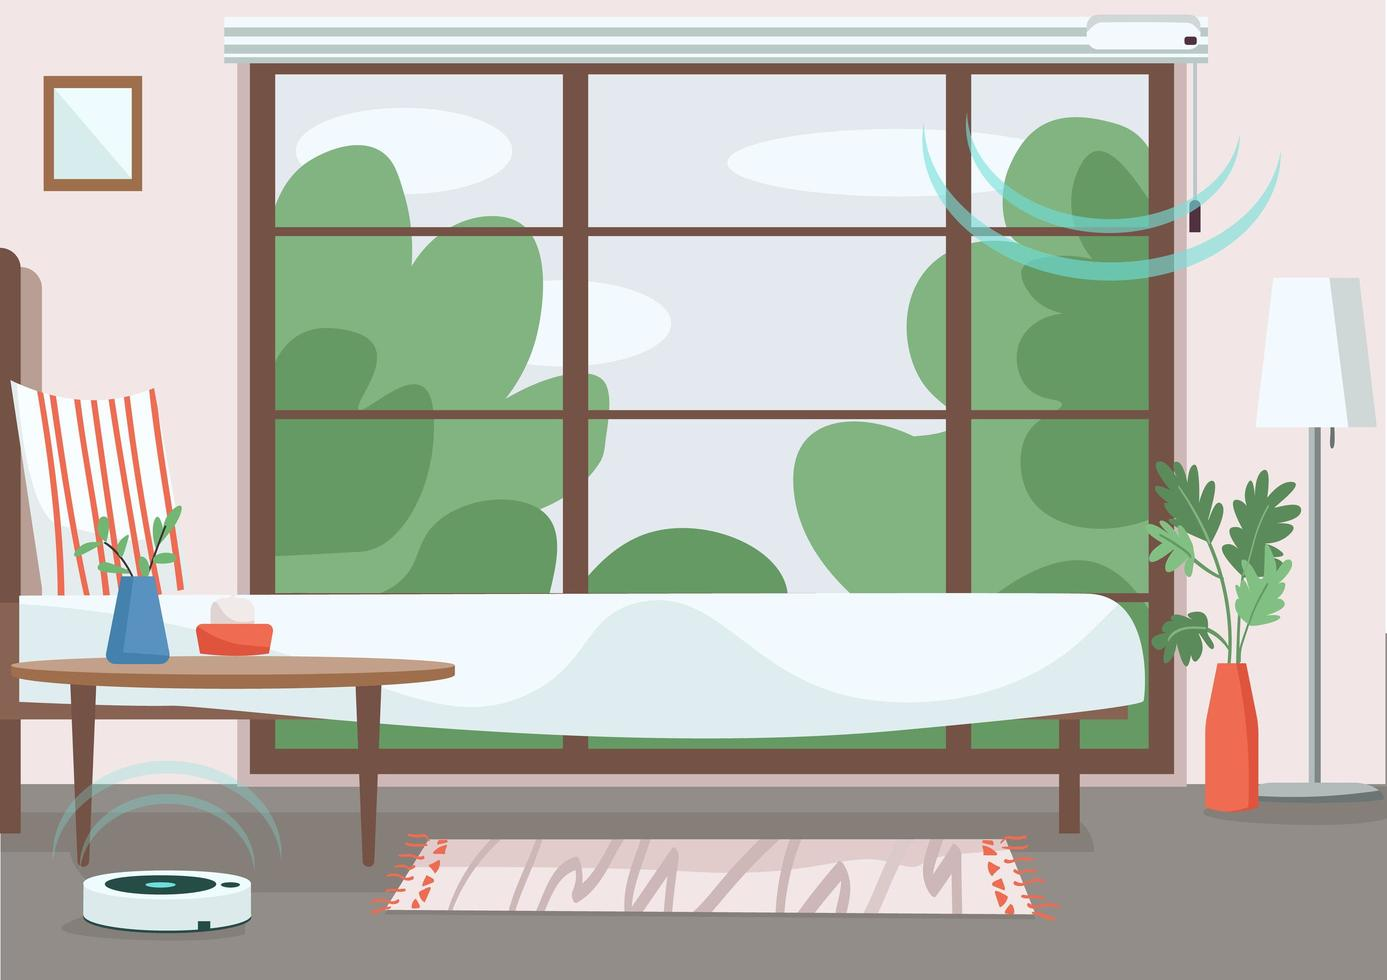 Modern Apartment With Smart Technology Download Free Vectors Clipart Graphics Vector Art